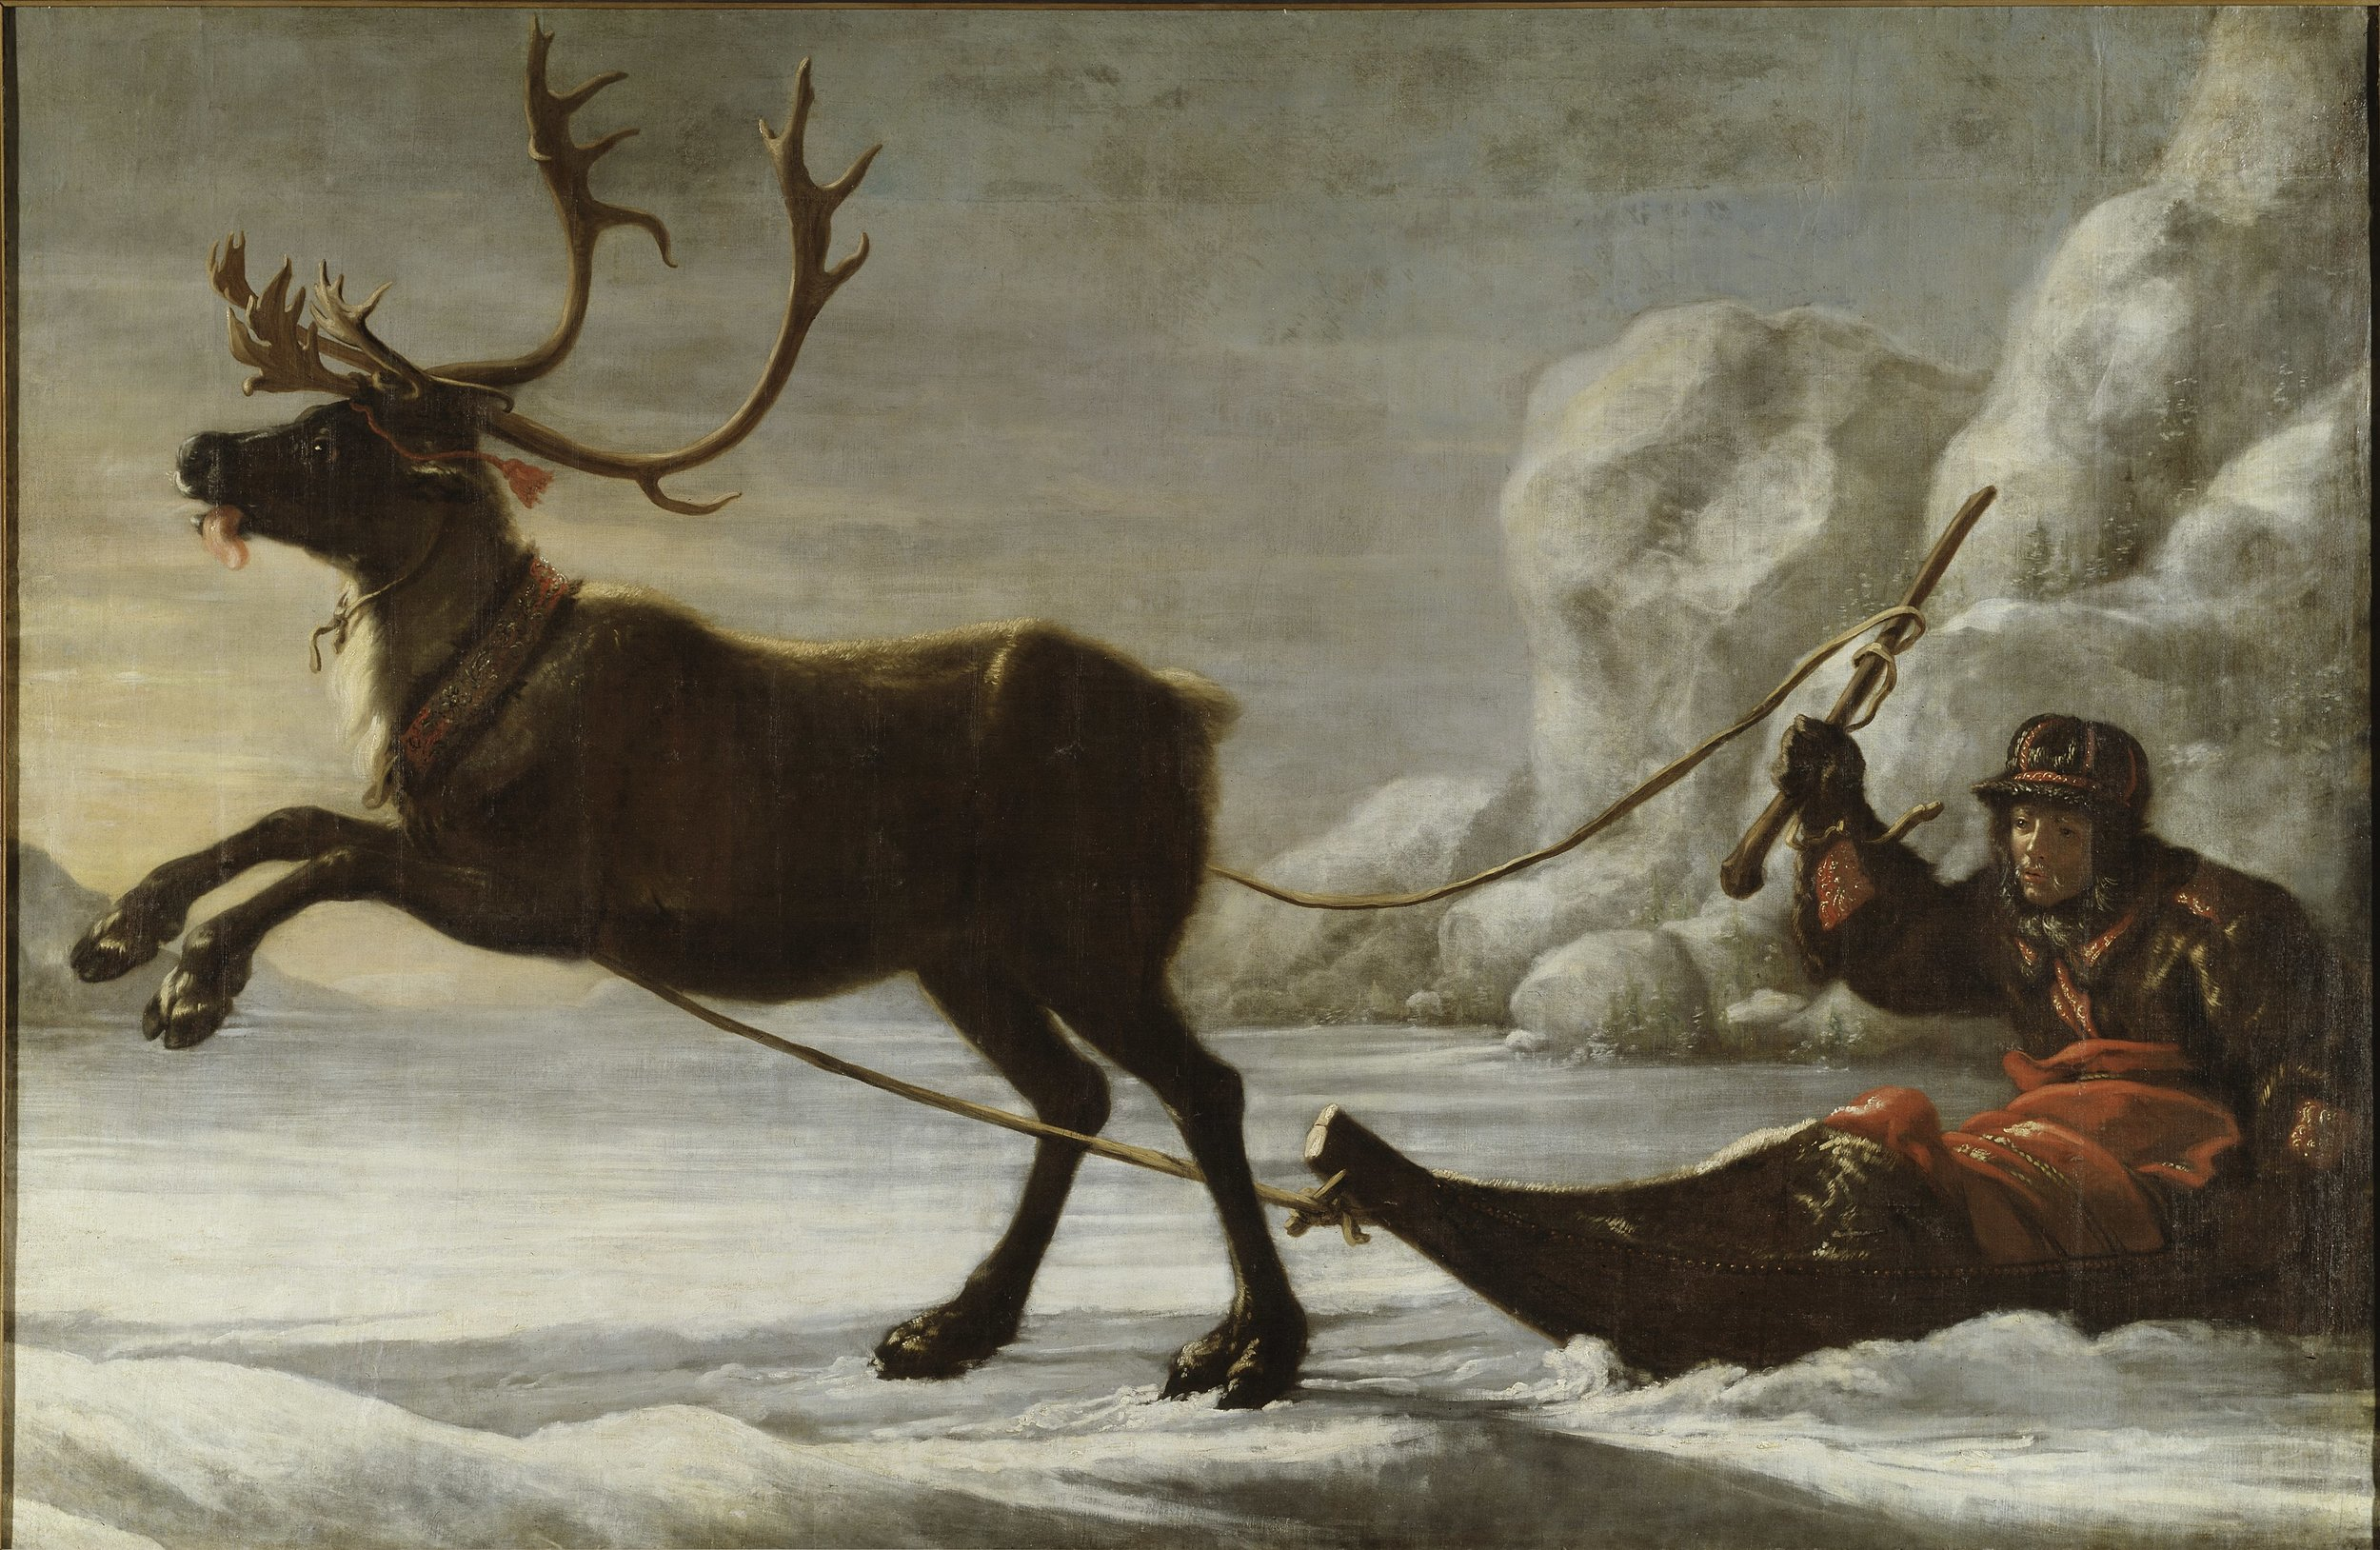 David Klöcker Ehrenstrahl, Reindeer with a sledge, 1671, Nationalmuseum.jpg